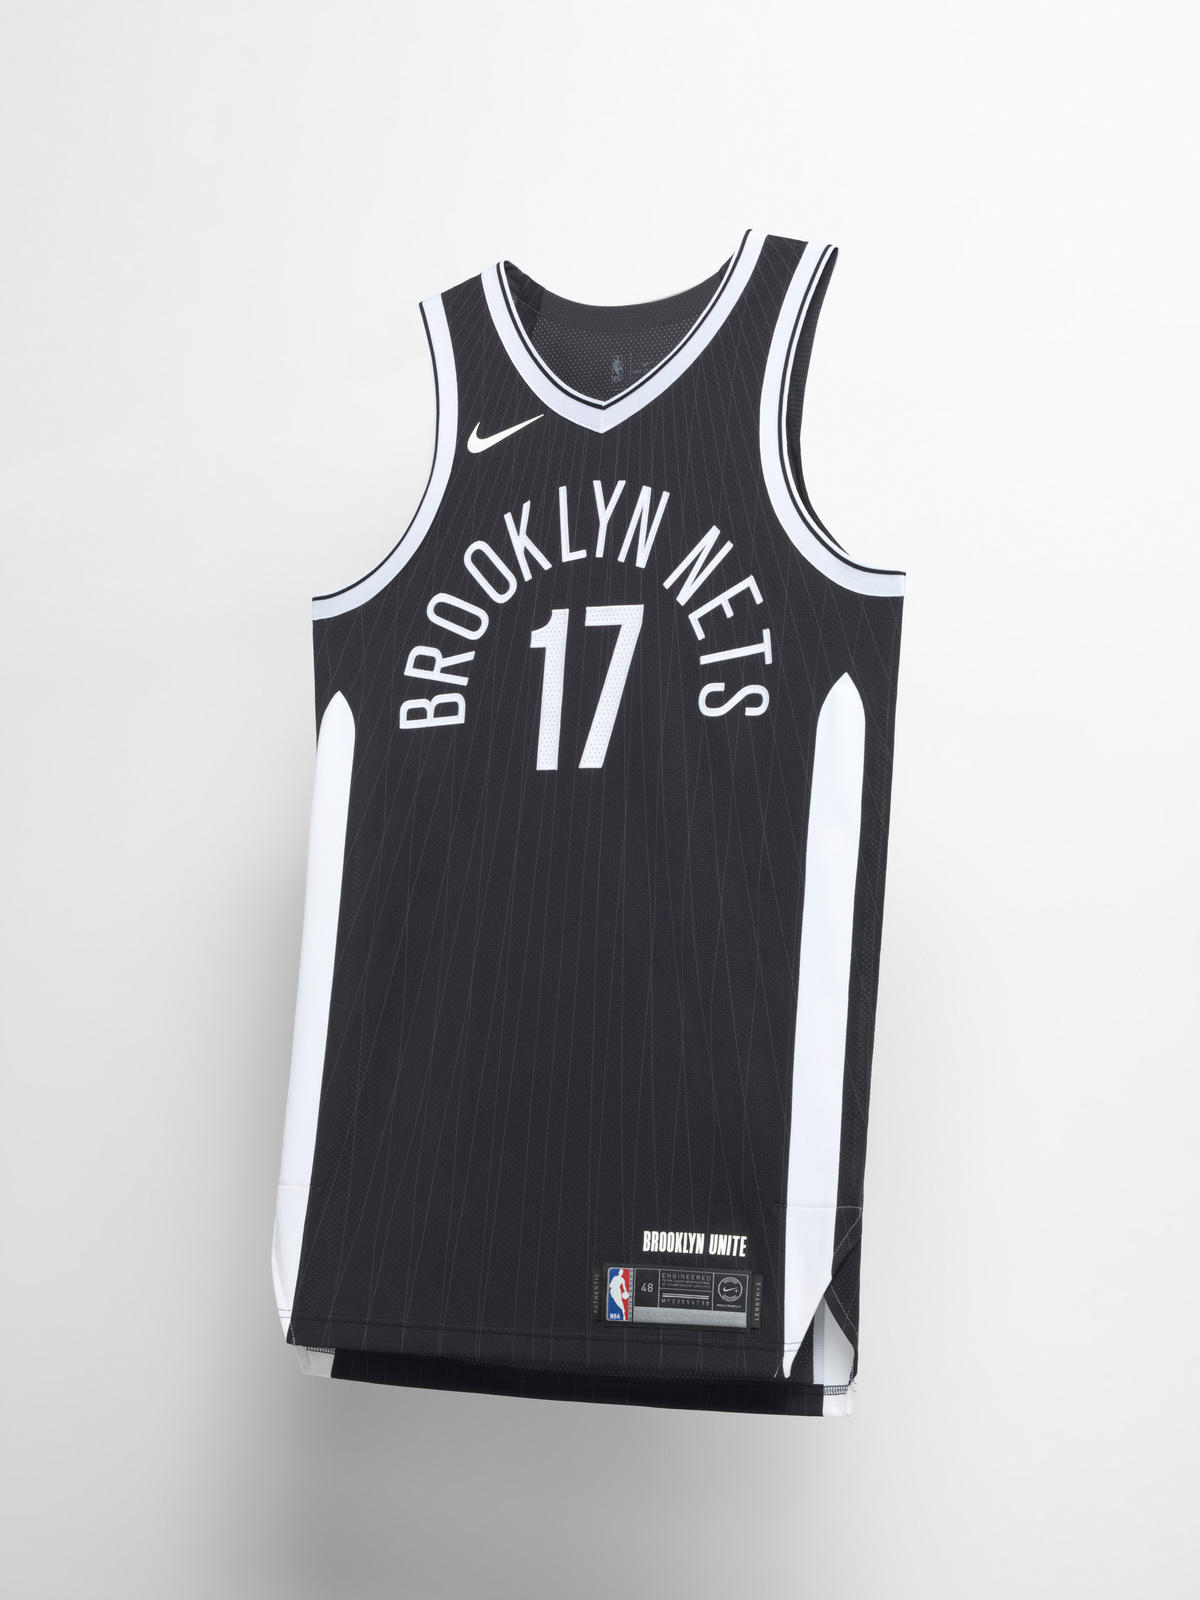 Nike_NBA_City_Edition_Uniform_Brooklyn_Nets_0182_native_1600